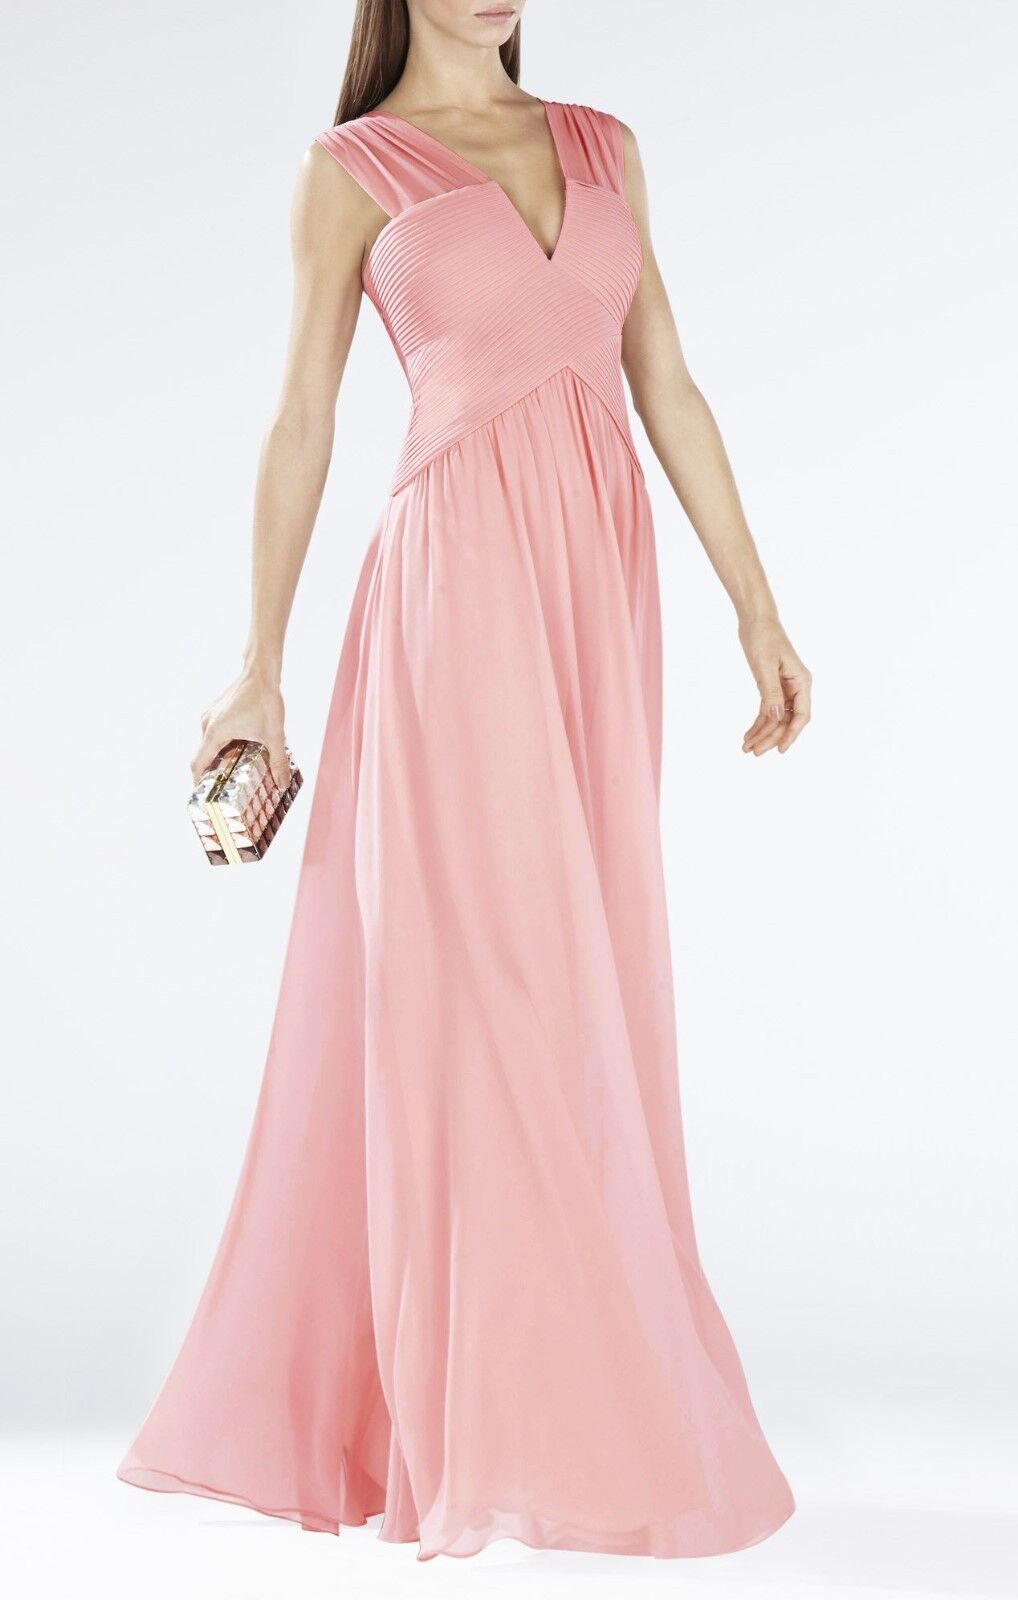 NEW BCBG MAXAZRIA LIGHTSHELL ASTELLA SLEEVELESS SHIRRED GOWN IQI62D03 L260A L260A L260A SZ 4 bde79d